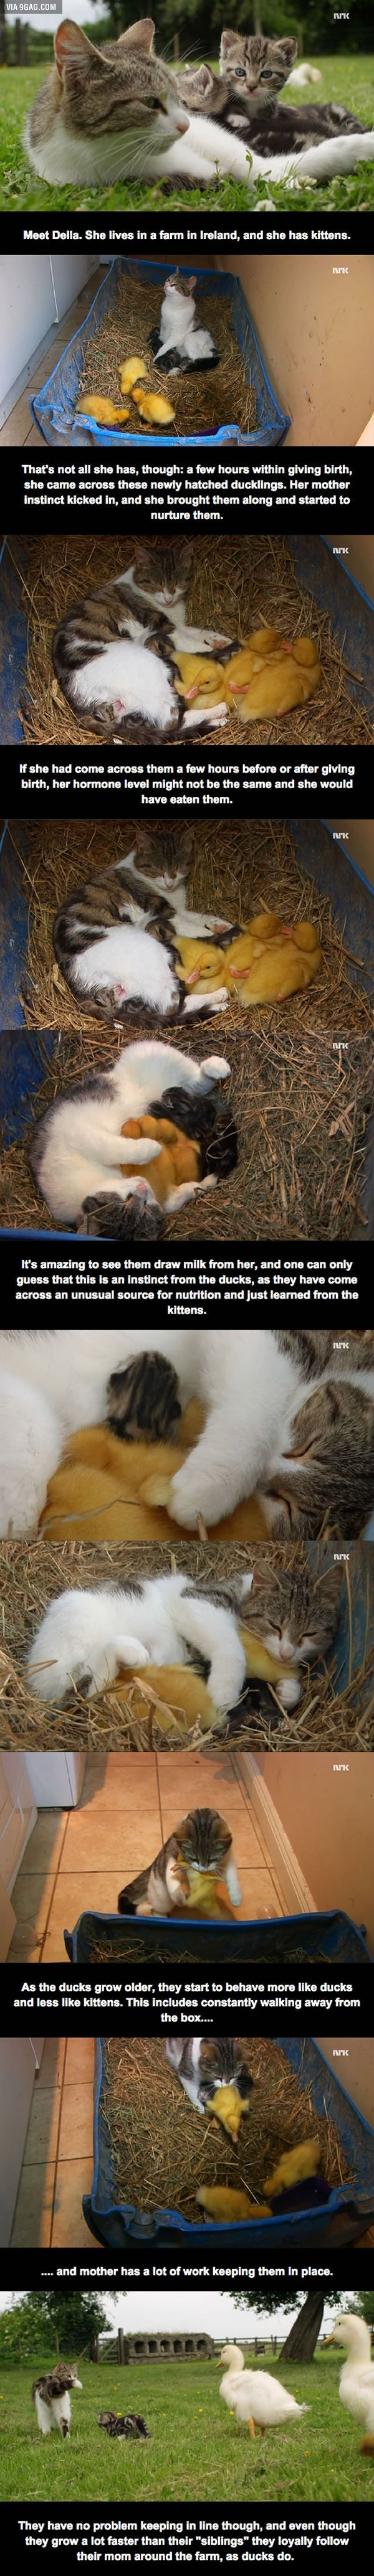 This maybe in kittens and ferrets but we can fit in a couple ducks just like this cat did!!!